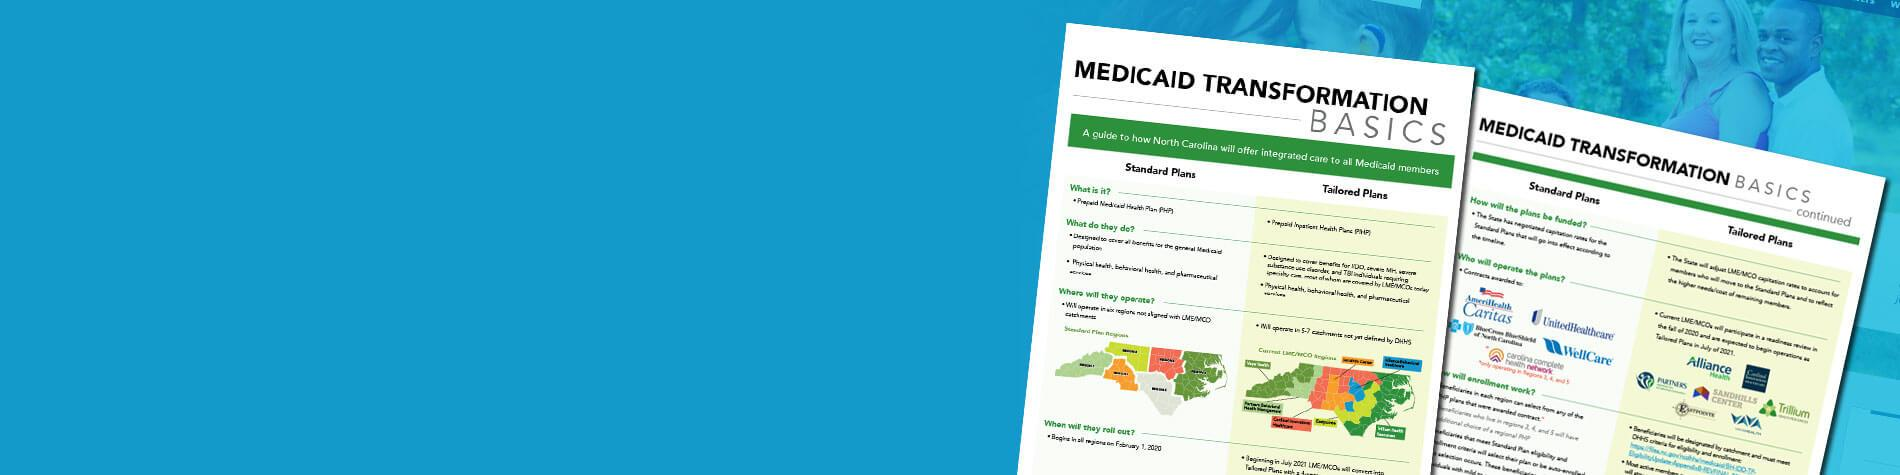 Medicaid Transformation PDF screenshots